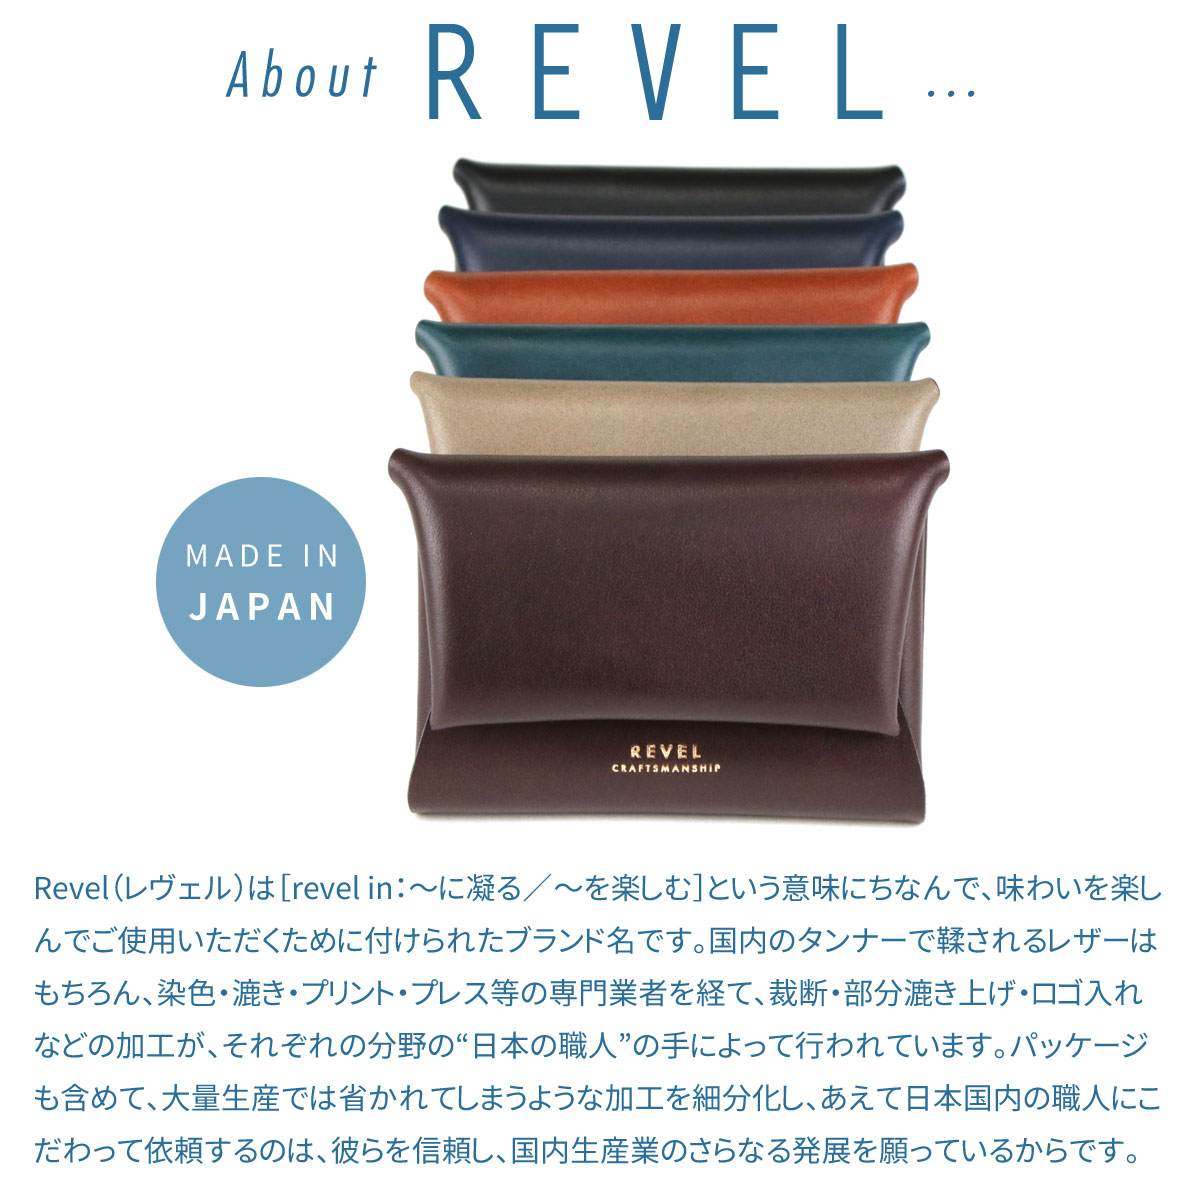 About REVEL …